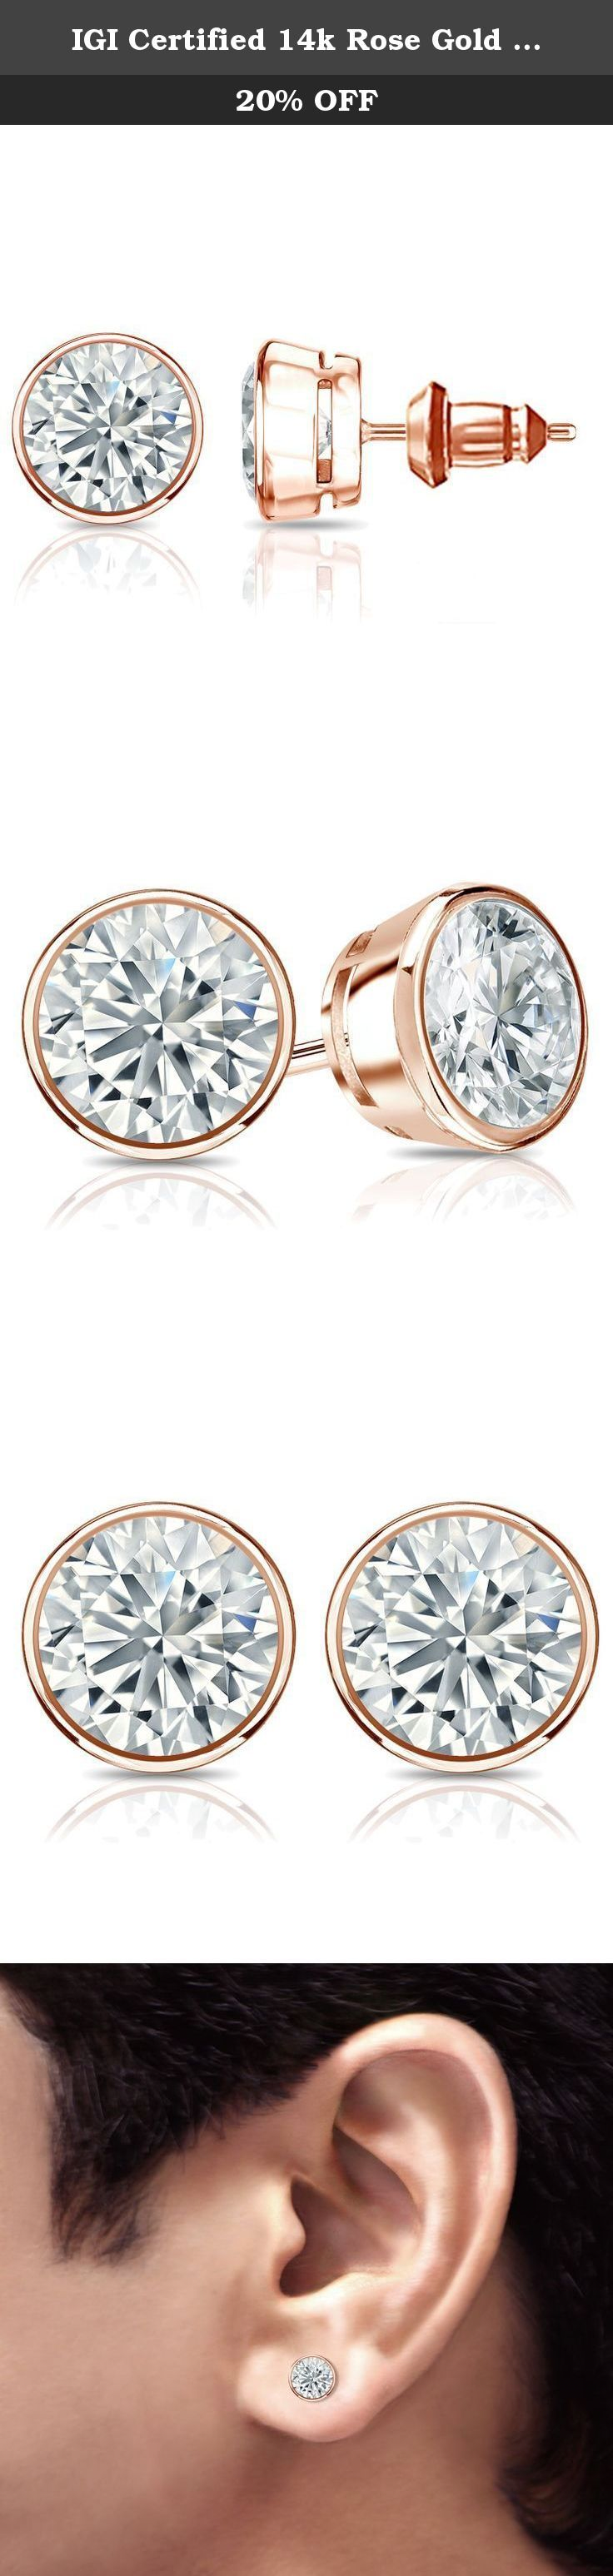 IGI Certified 14k Rose Gold Bezel Round Diamond Men's Stud Earrings (2 ct, White, I1-I2). These gorgeous diamond stud earrings for men features bezel setting in glistening 14k rose gold metal. The studs include dazzling round-cut diamonds with total weight of 2 ct. and are available with secure lock back clasps.